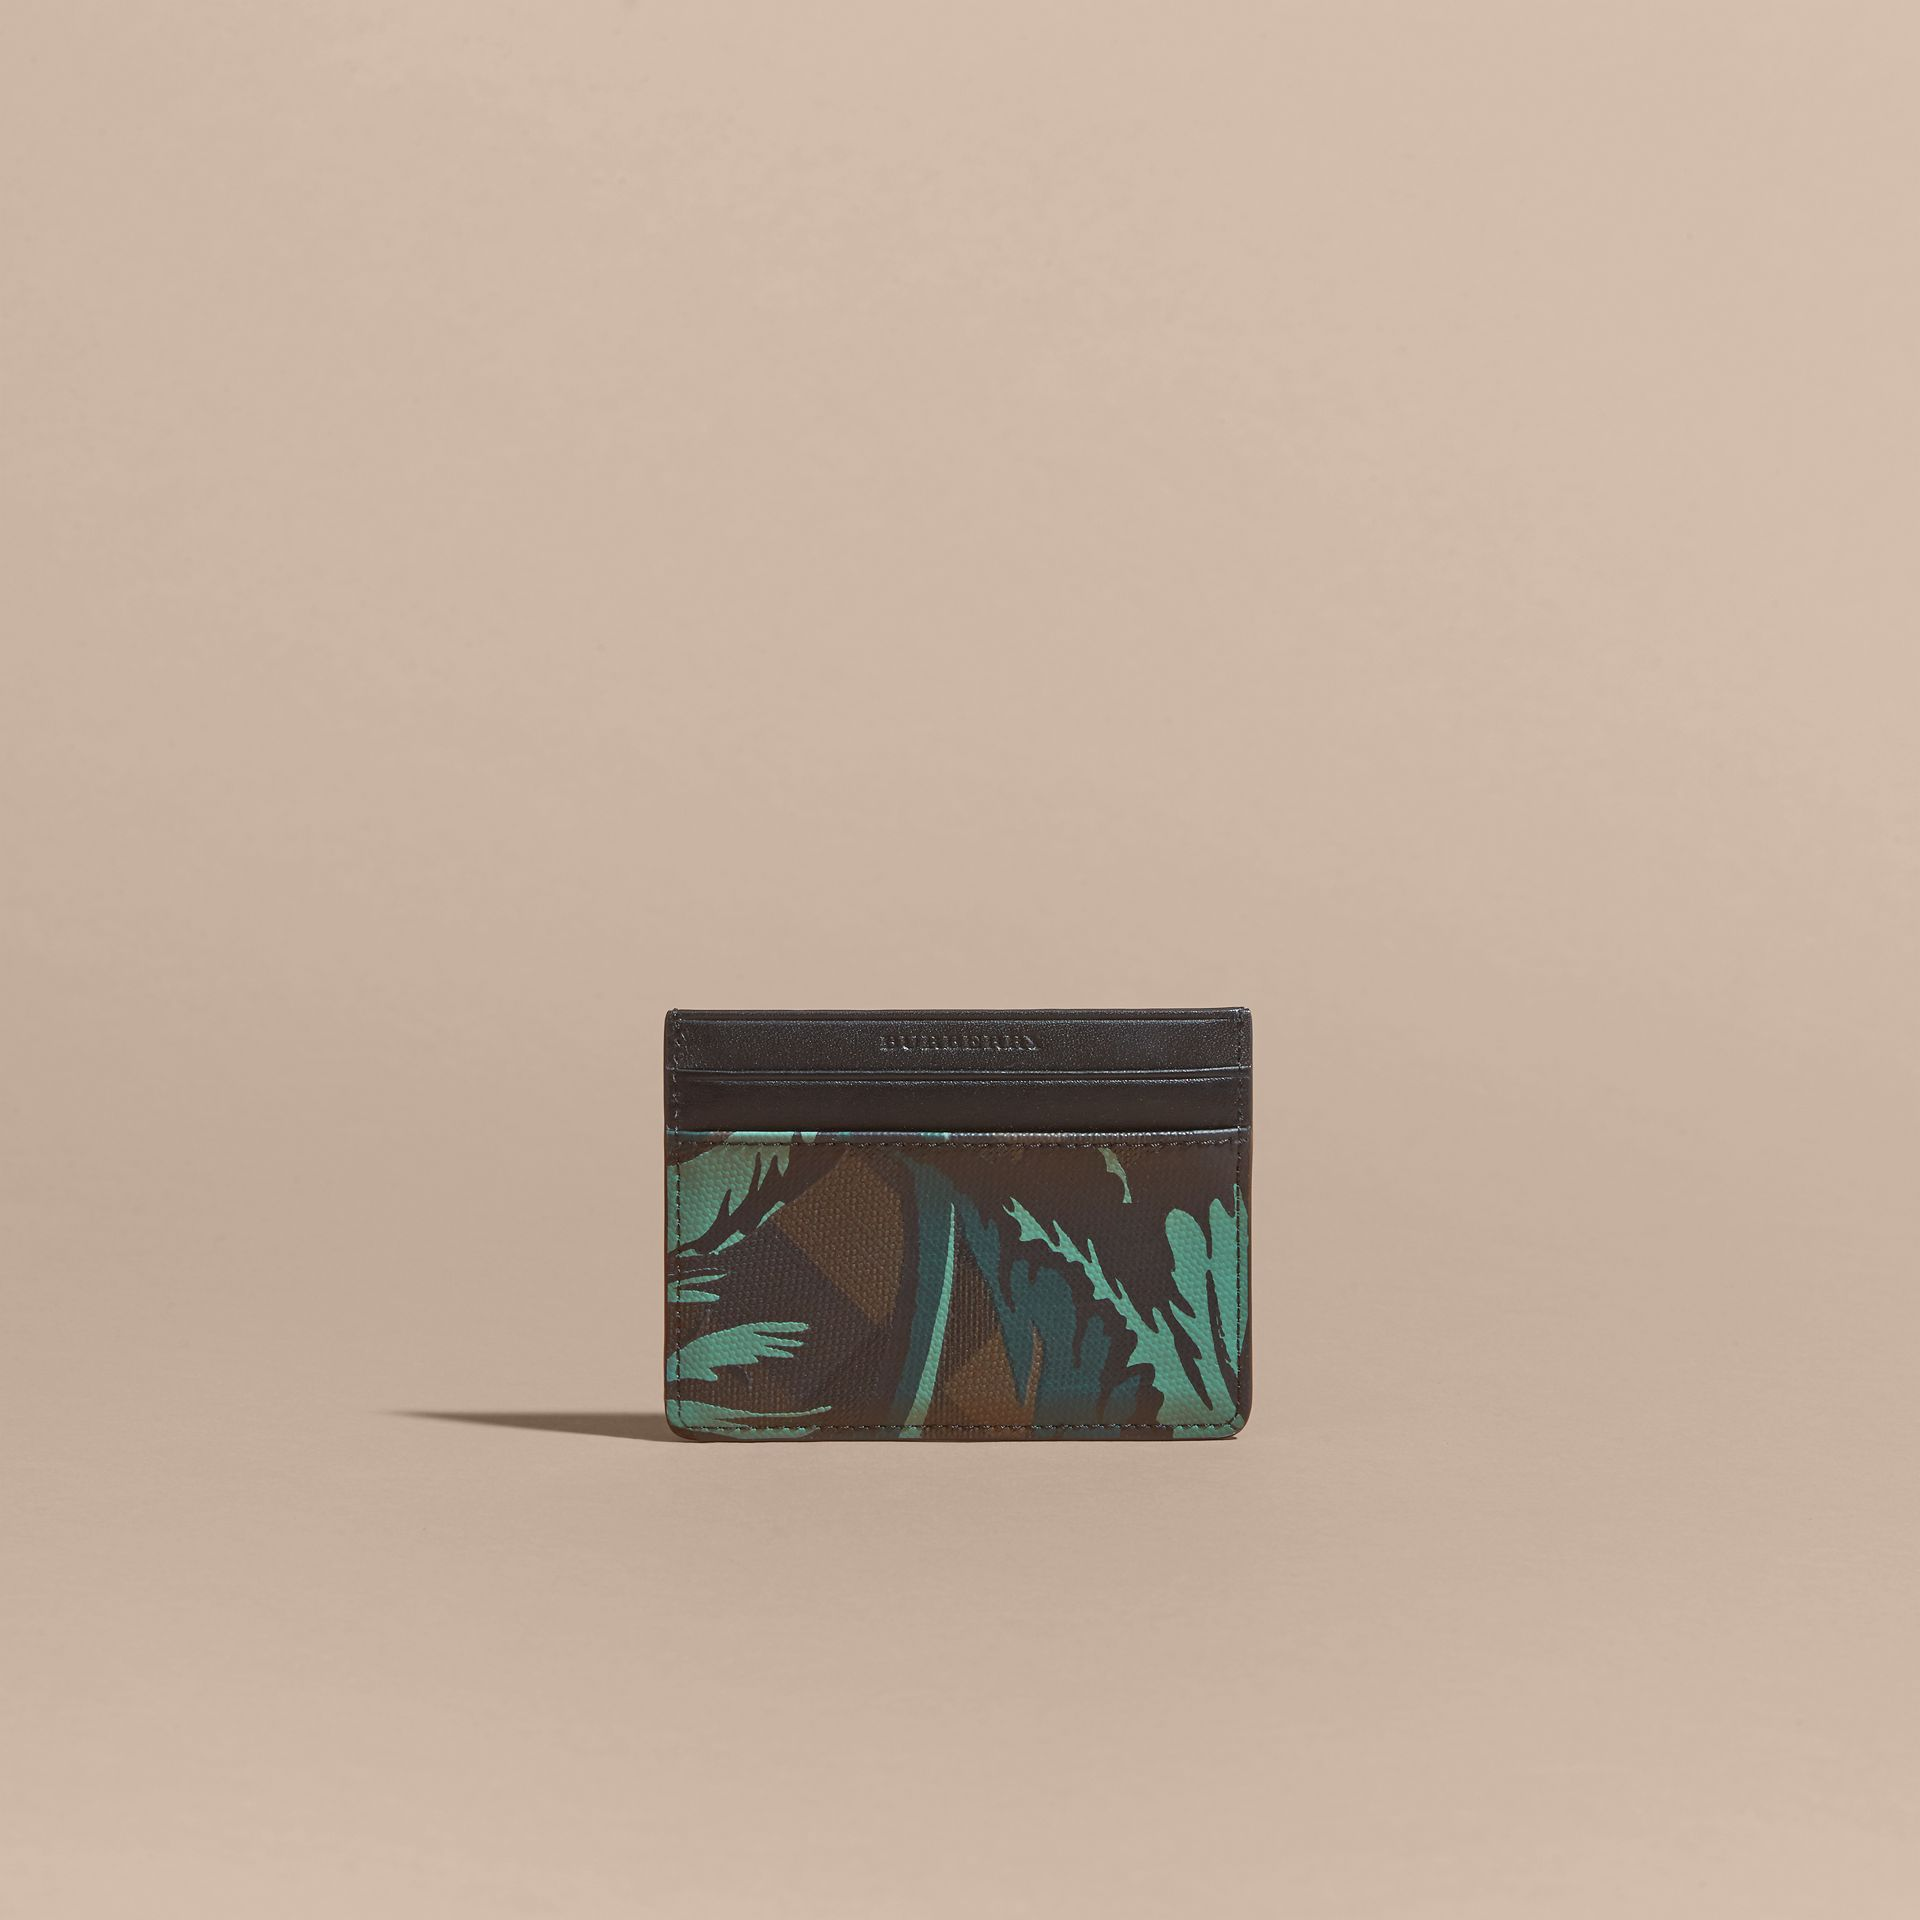 Floral Print London Check Card Case in Chocolate - Men | Burberry - gallery image 6